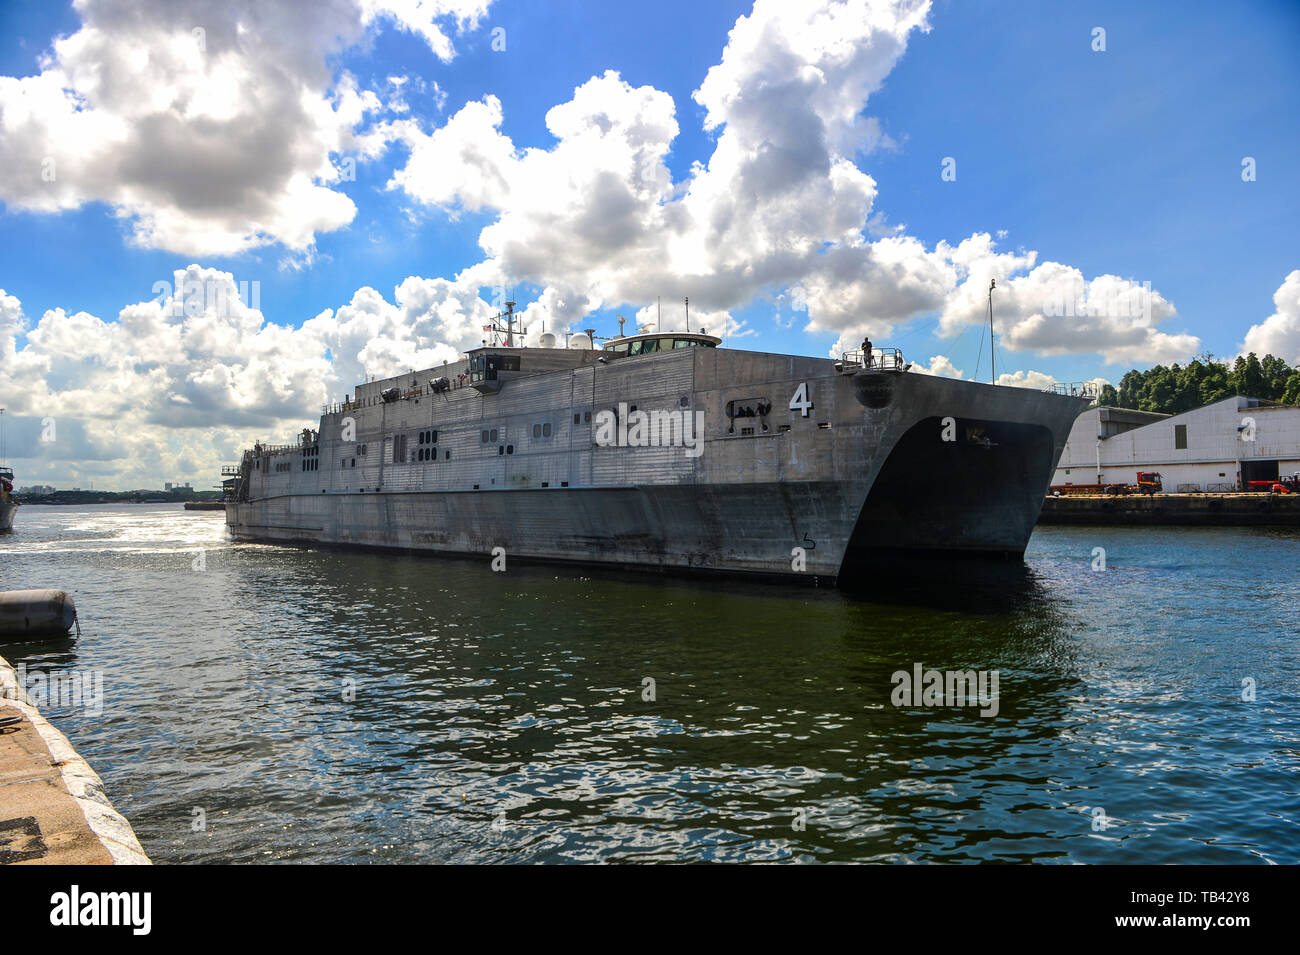 190528-N-FV739-065  SINGAPORE (May 28, 2019) The Military Sealift Command expeditionary fast transport ship USNS Fall River (T-EPF 4) pulls into the Sembawang Wharves following its last Pacific Partnership mission stop in Thailand. Pacific Partnership, now in its 14th iteration, is the largest annual multinational humanitarian assistance and disaster relief preparedness mission conducted in the Indo-Pacific. Each year the mission team works collectively with host and partner nations to enhance regional interoperability and disaster response capabilities, increase security and stability in the  - Stock Image